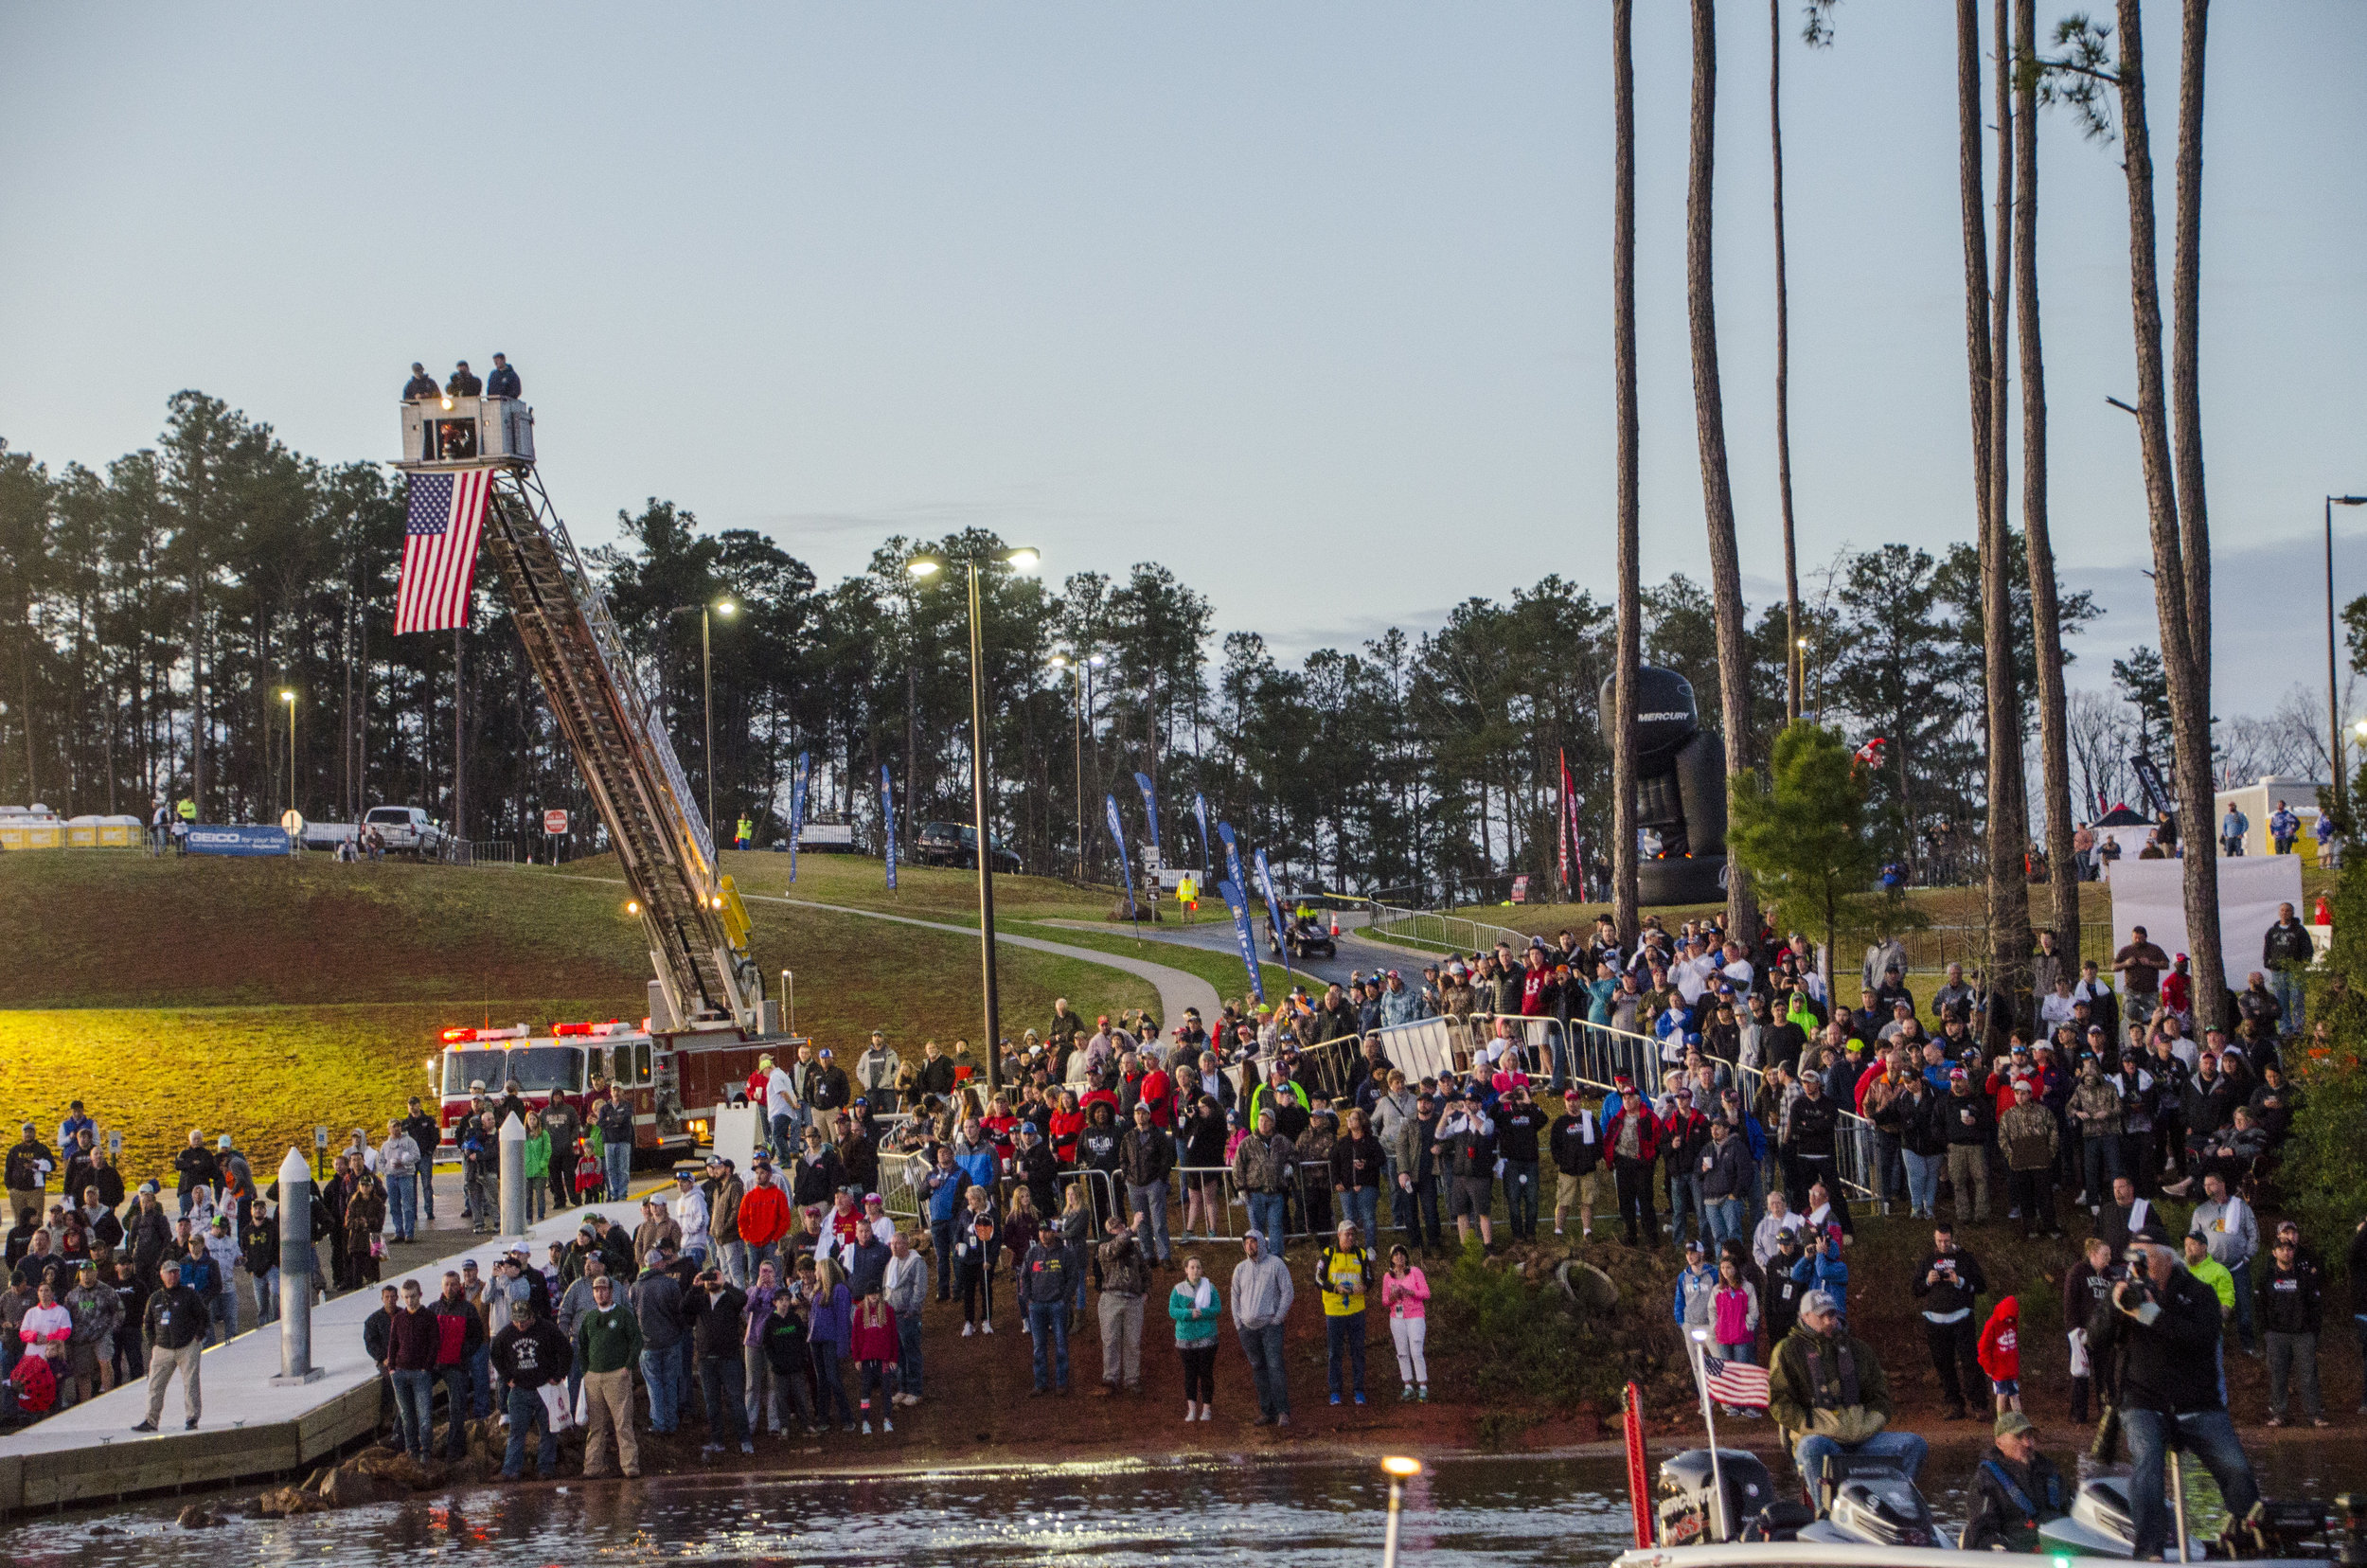 Excited fans crowd the shoreline for the first day of fishing at the 2018 Bassmaster Classic at Lake Hartwell's Green Pond Landing.